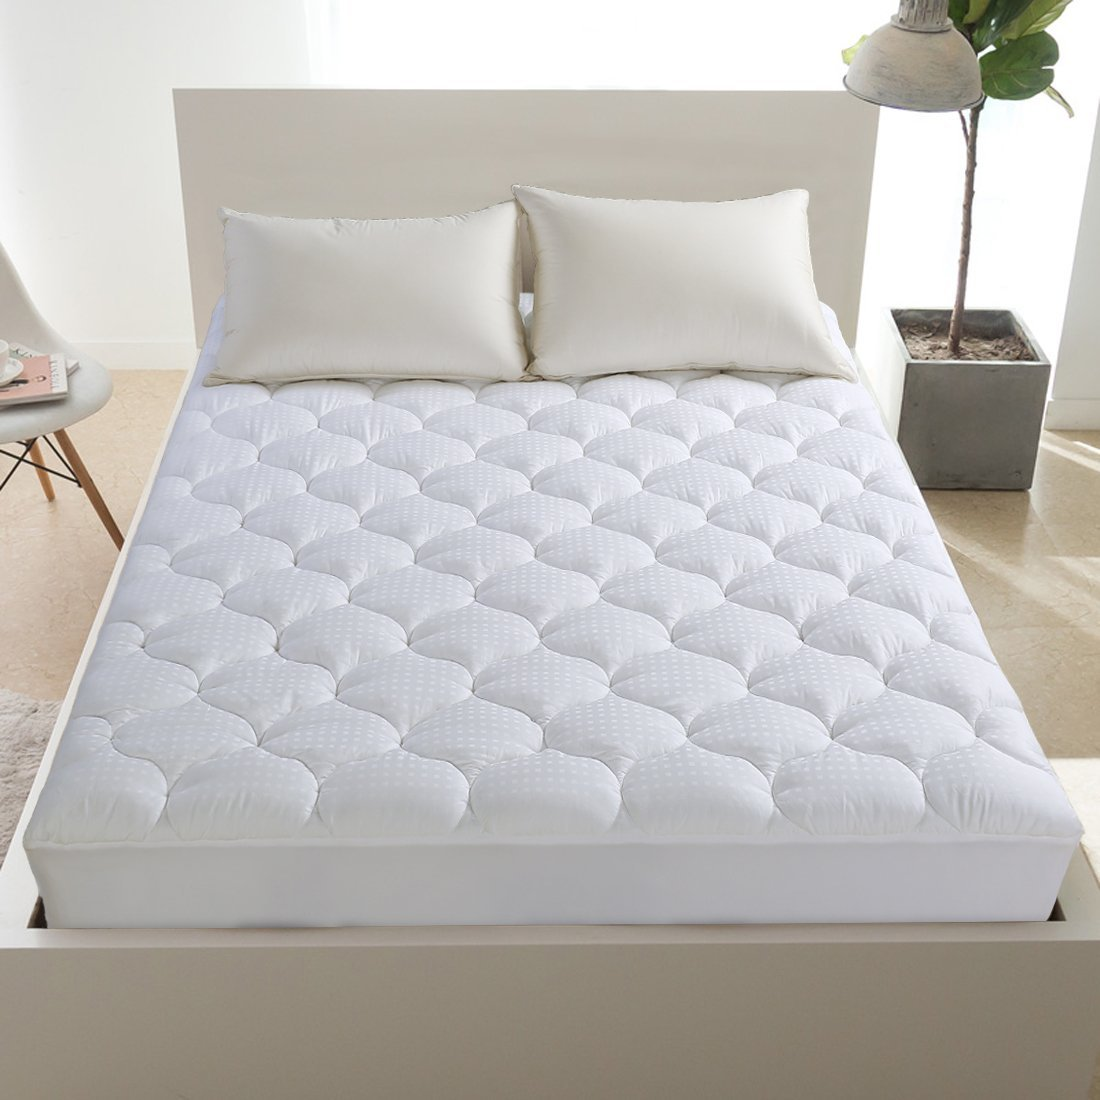 mattress pad topper best reviews ratings cool june